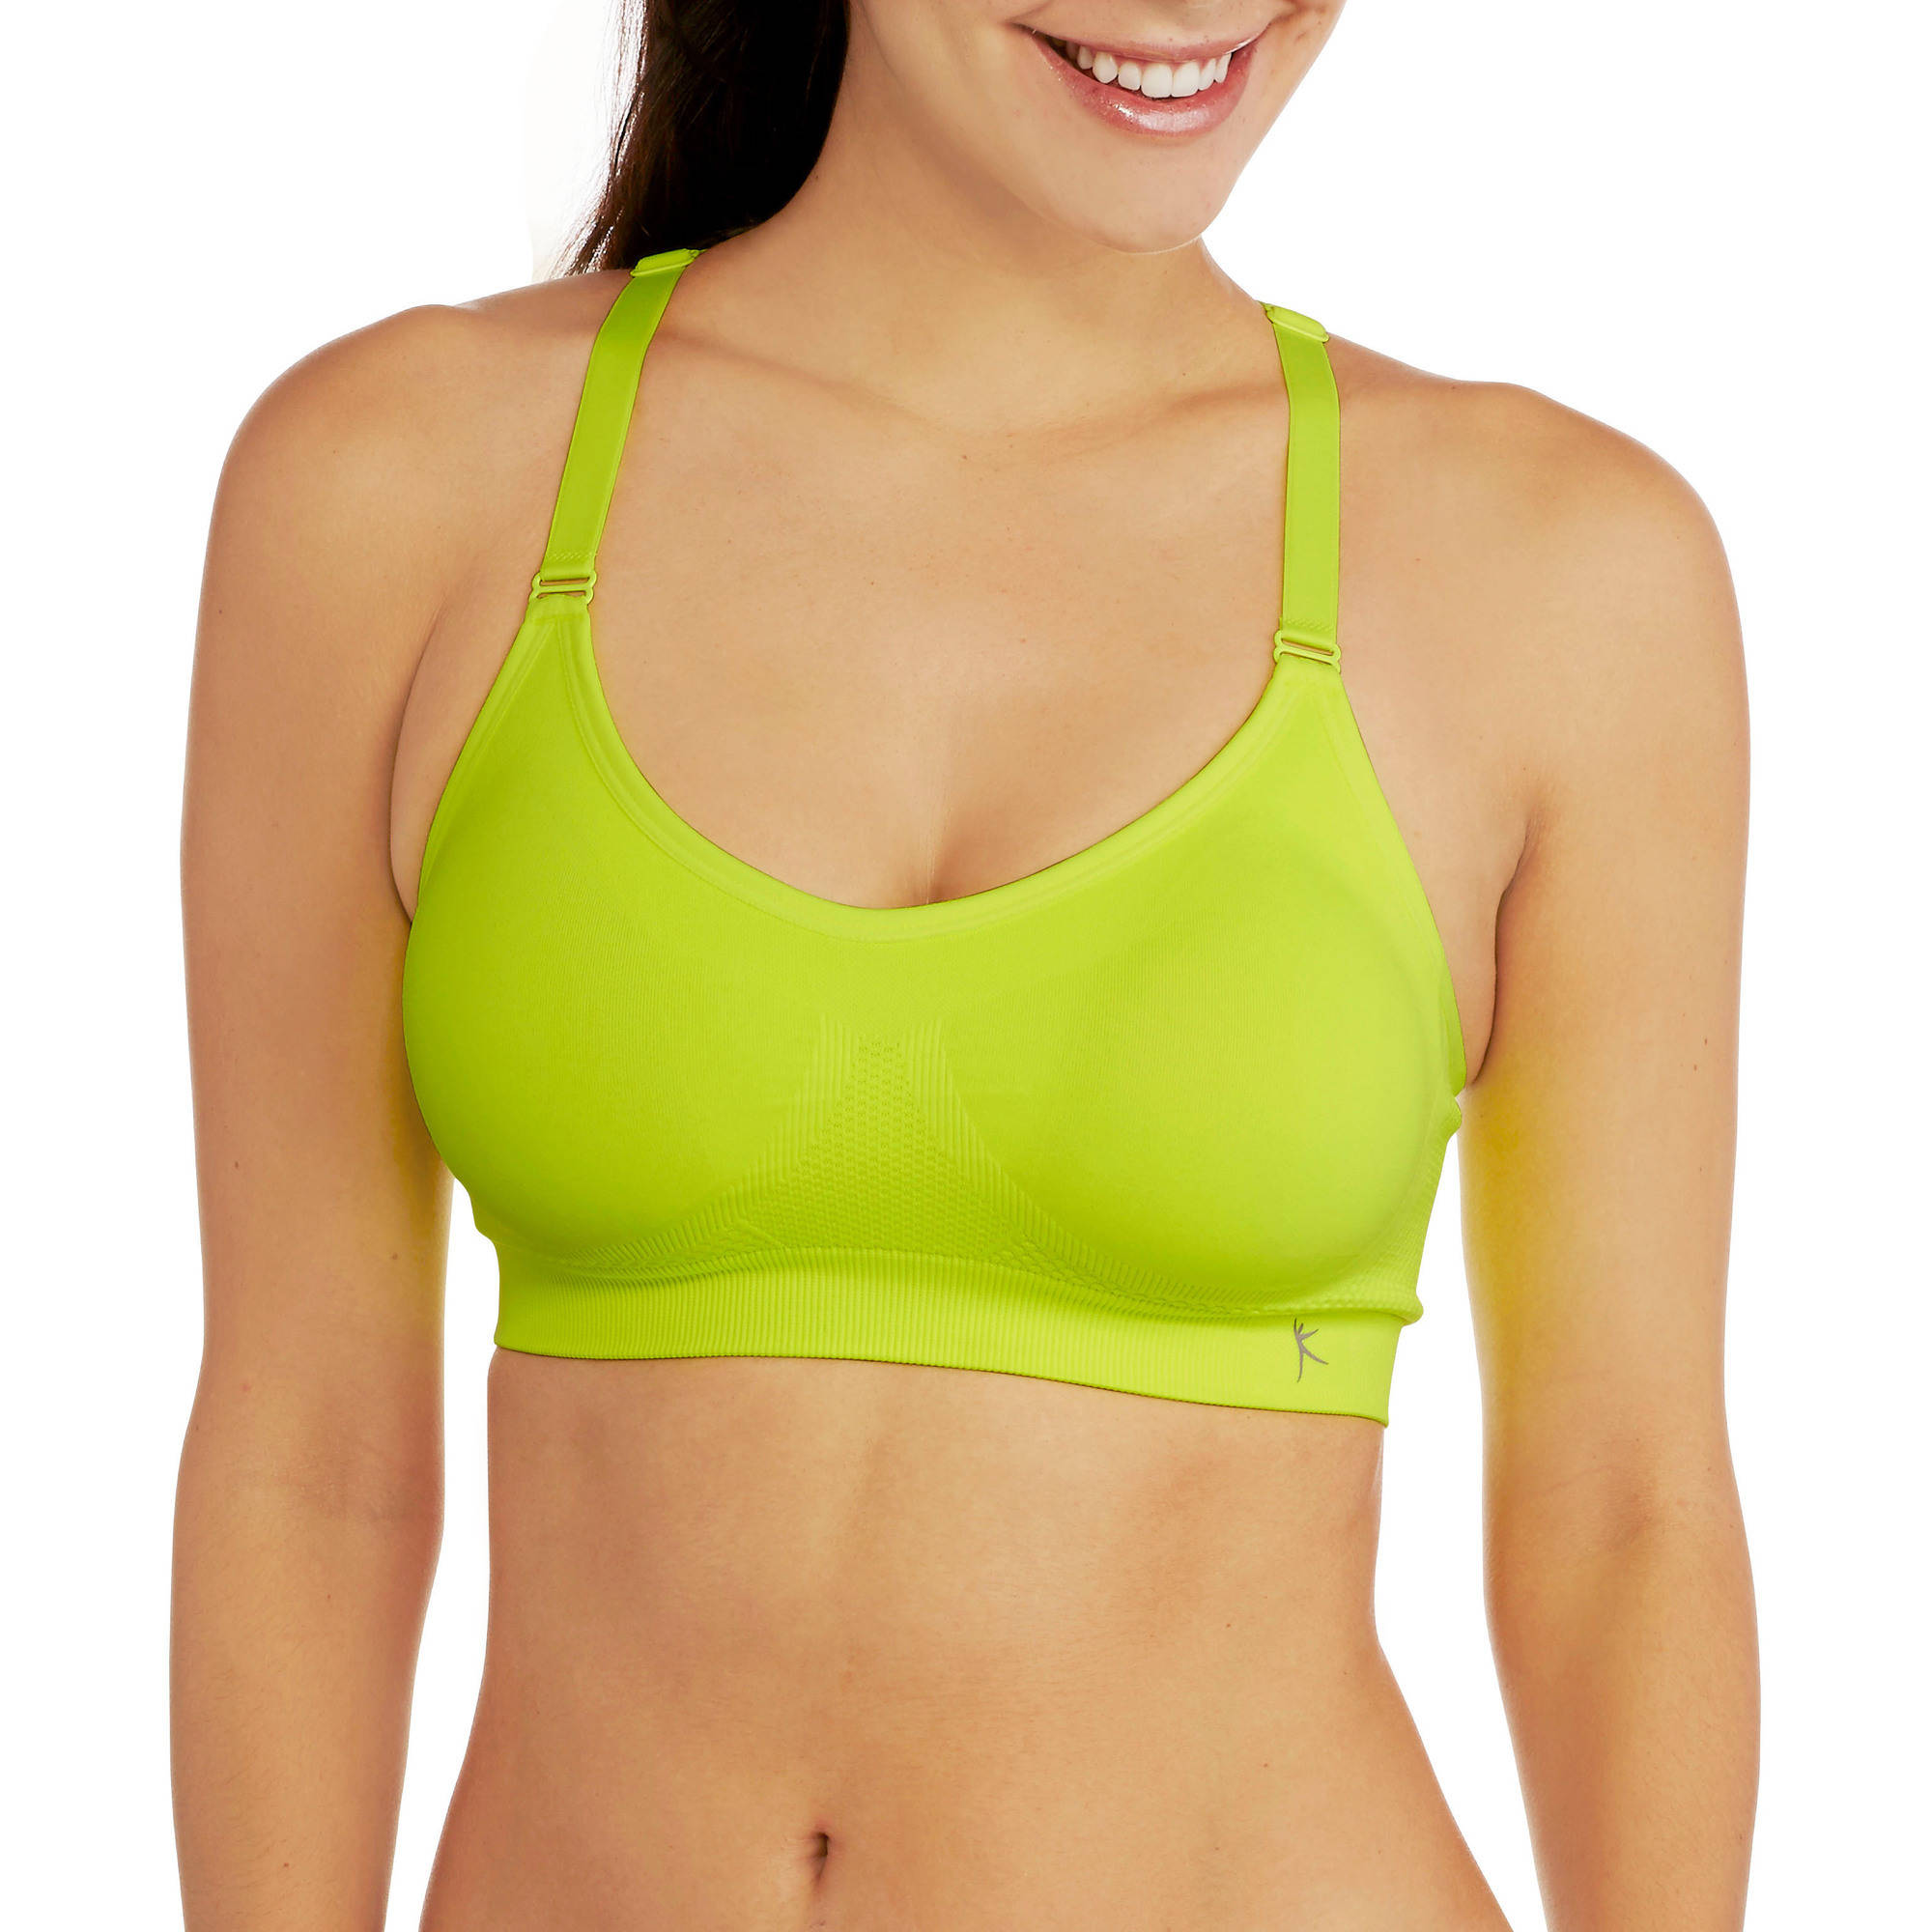 Danskin Now Women's Active Seamless Mesh Back Cami Bra